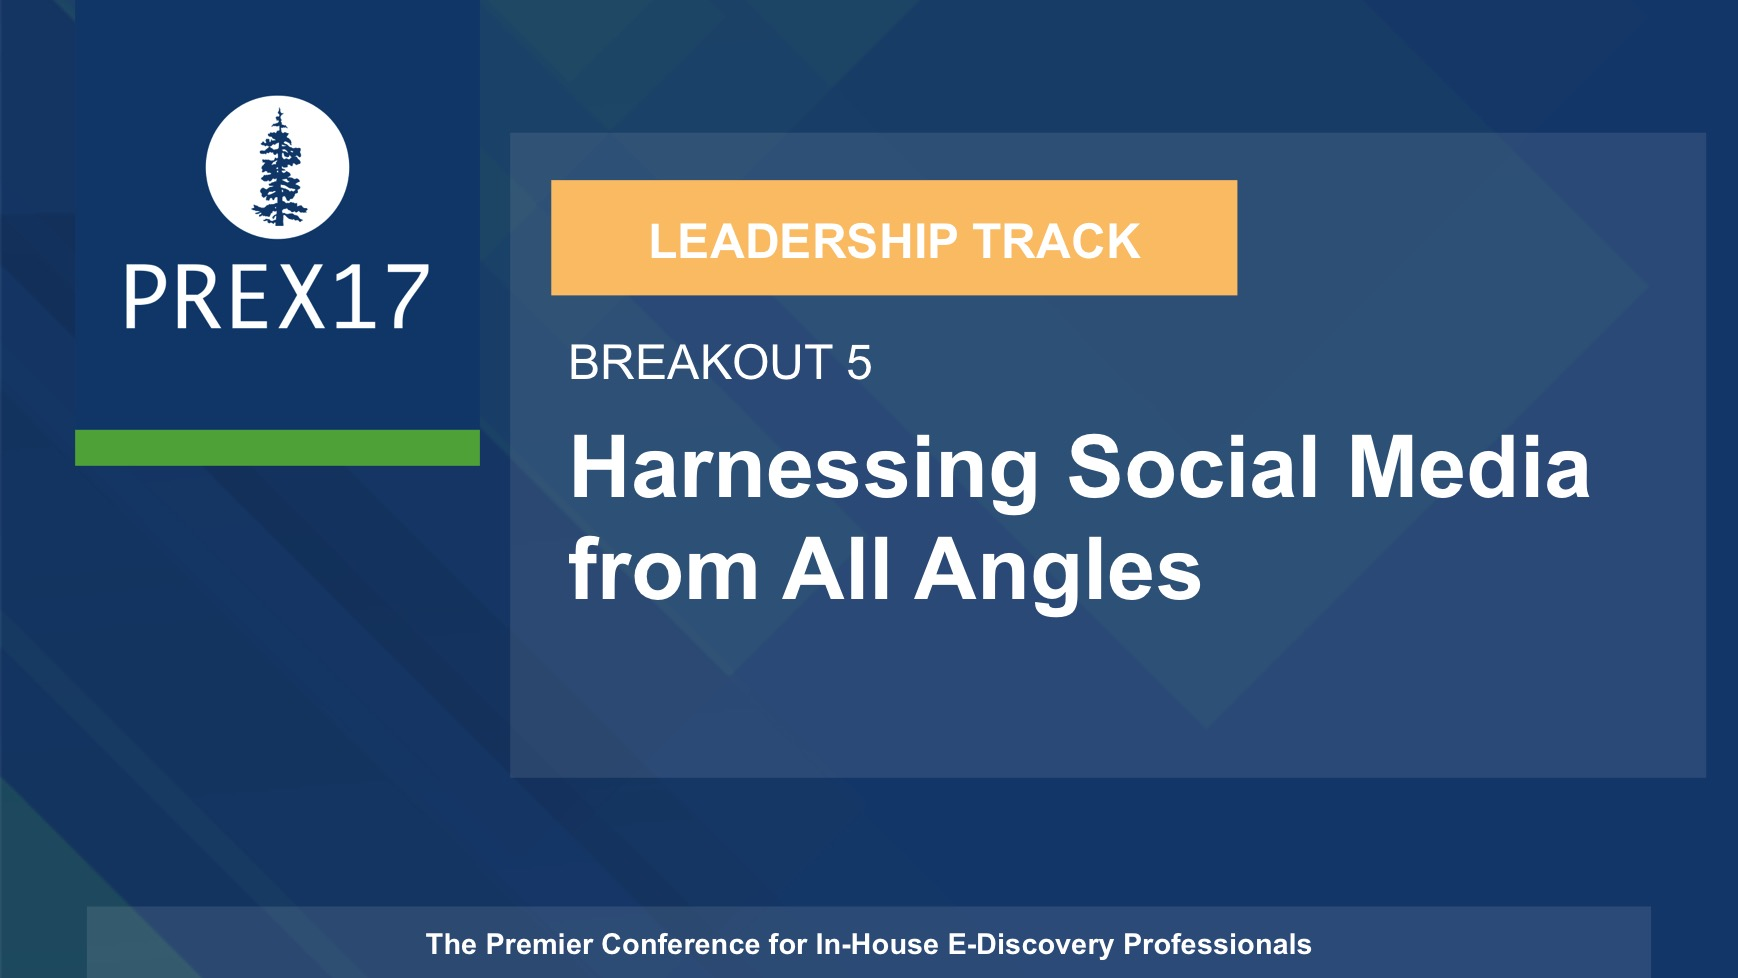 (Breakout 5 - Leadership) Harnessing Social Media from All Angles